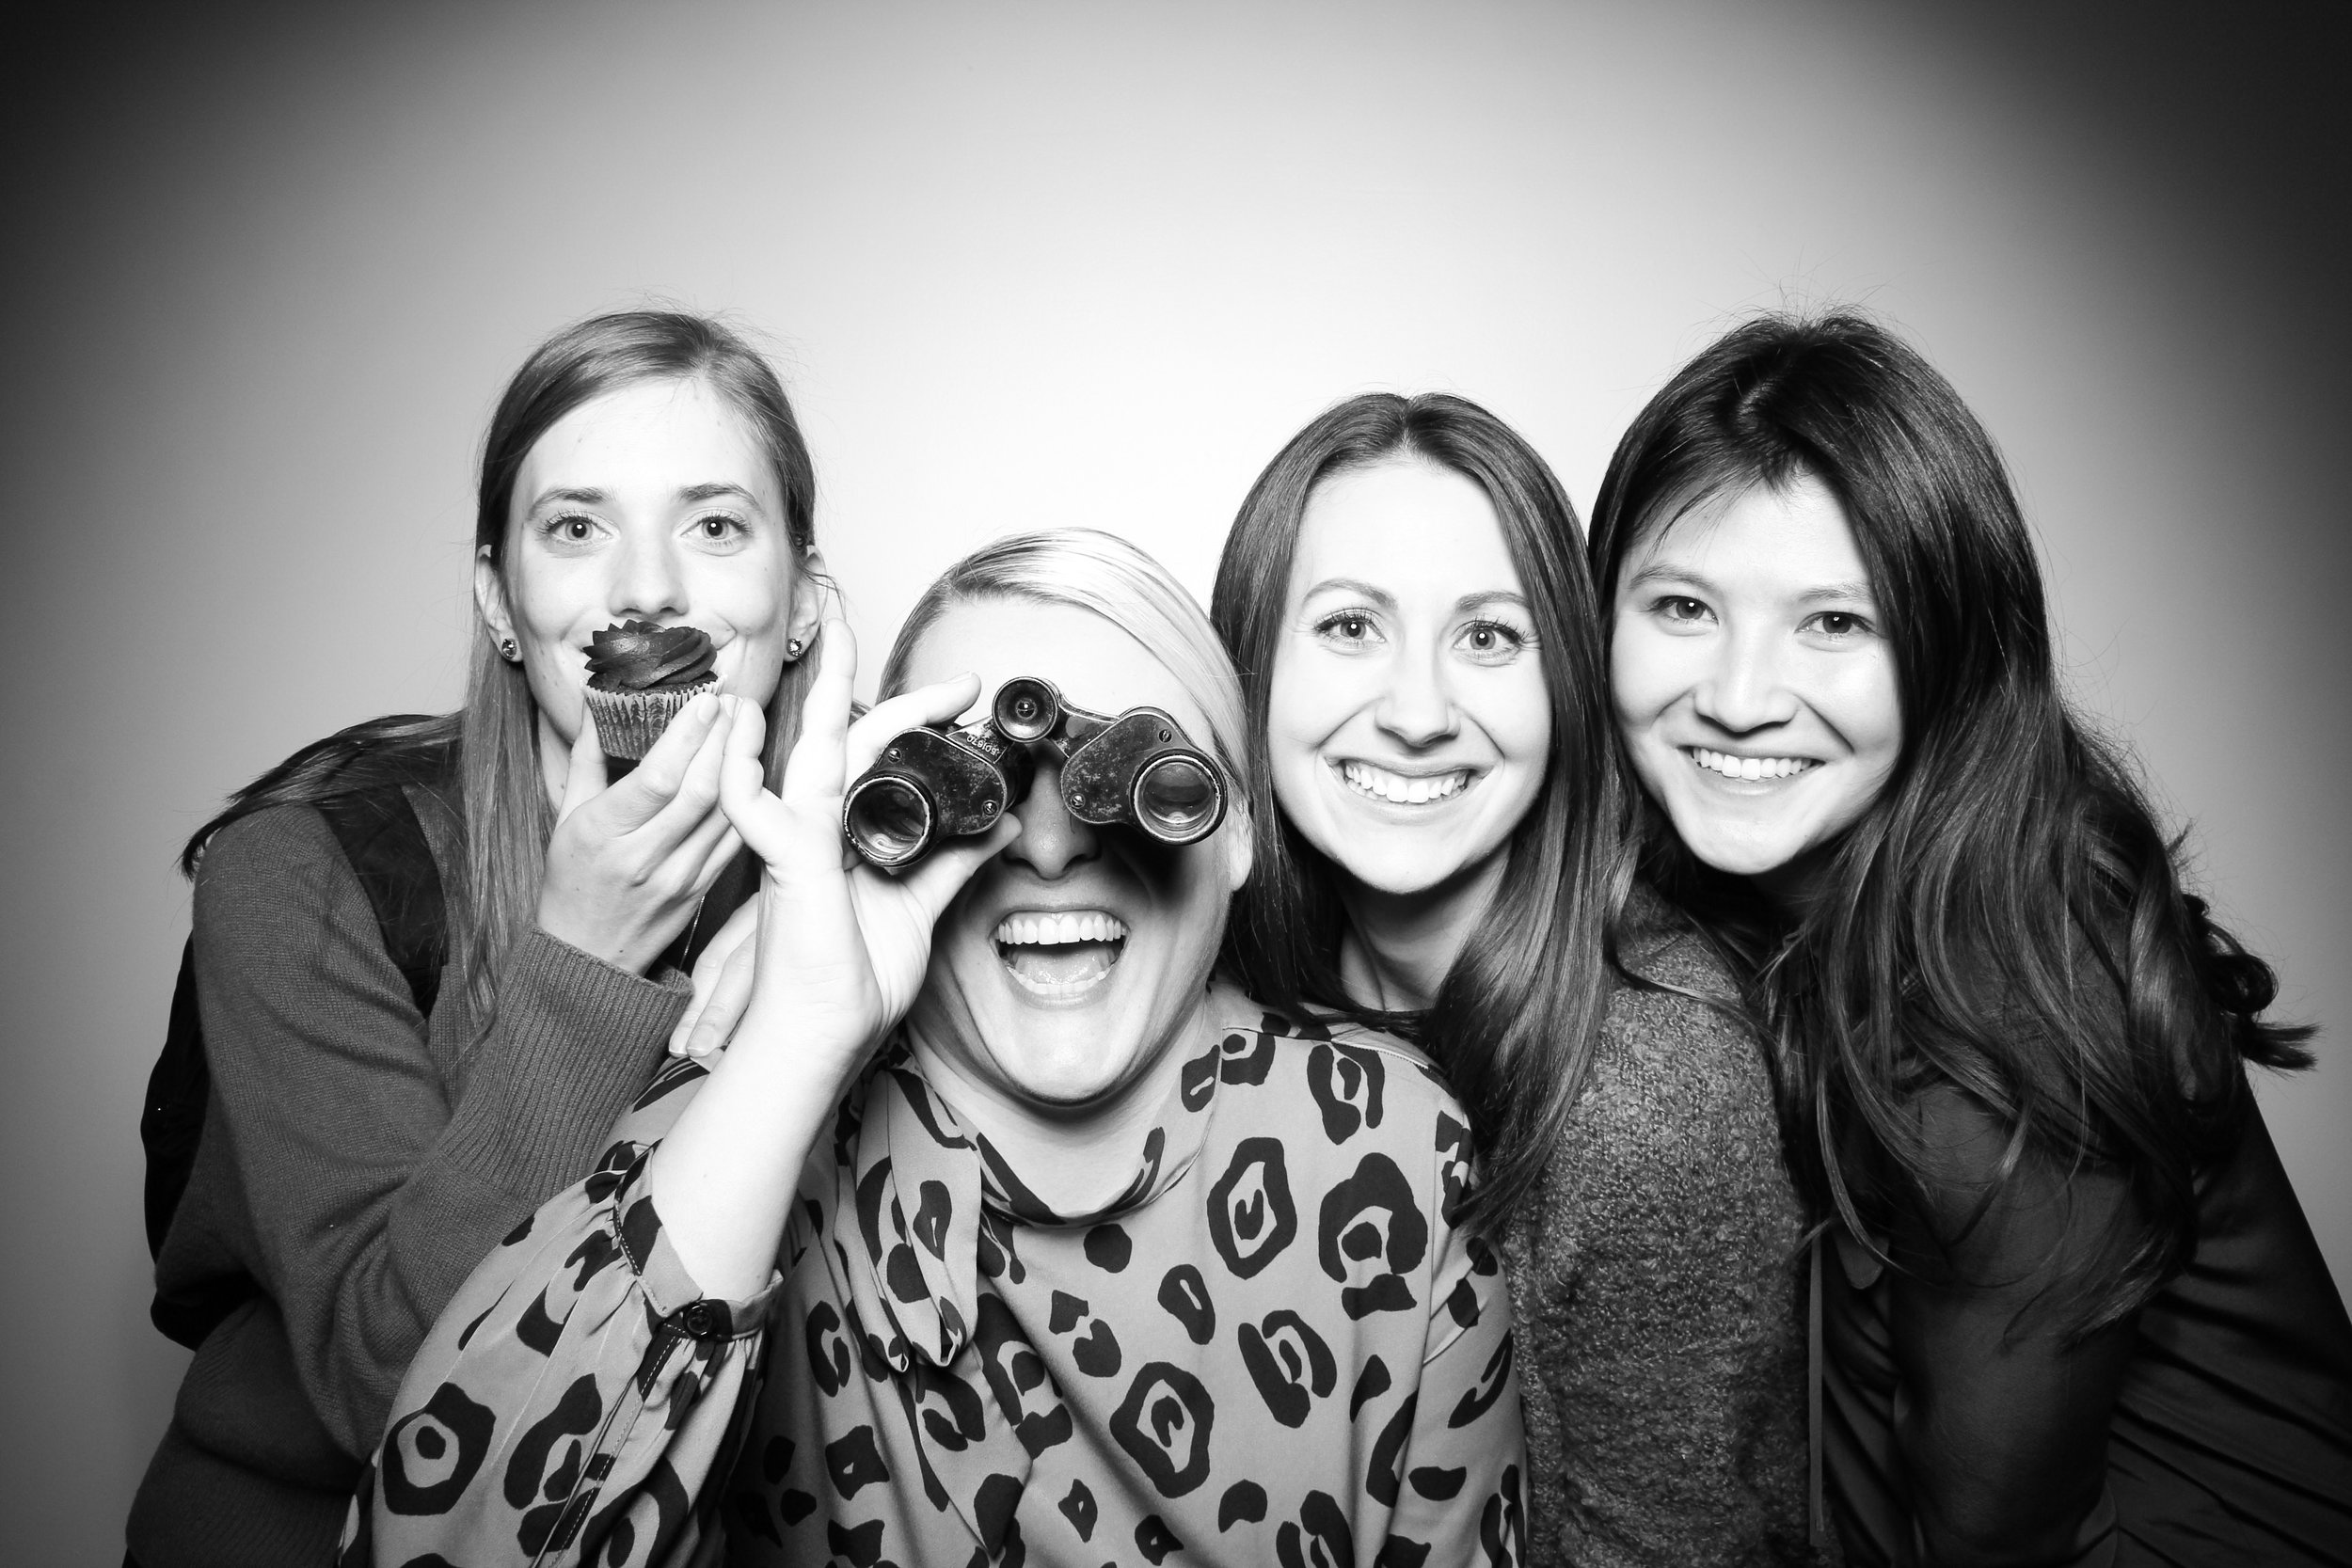 Venue_West_J&L_Catering_Chicago_Photo_Booth_Vitnage__10.jpg